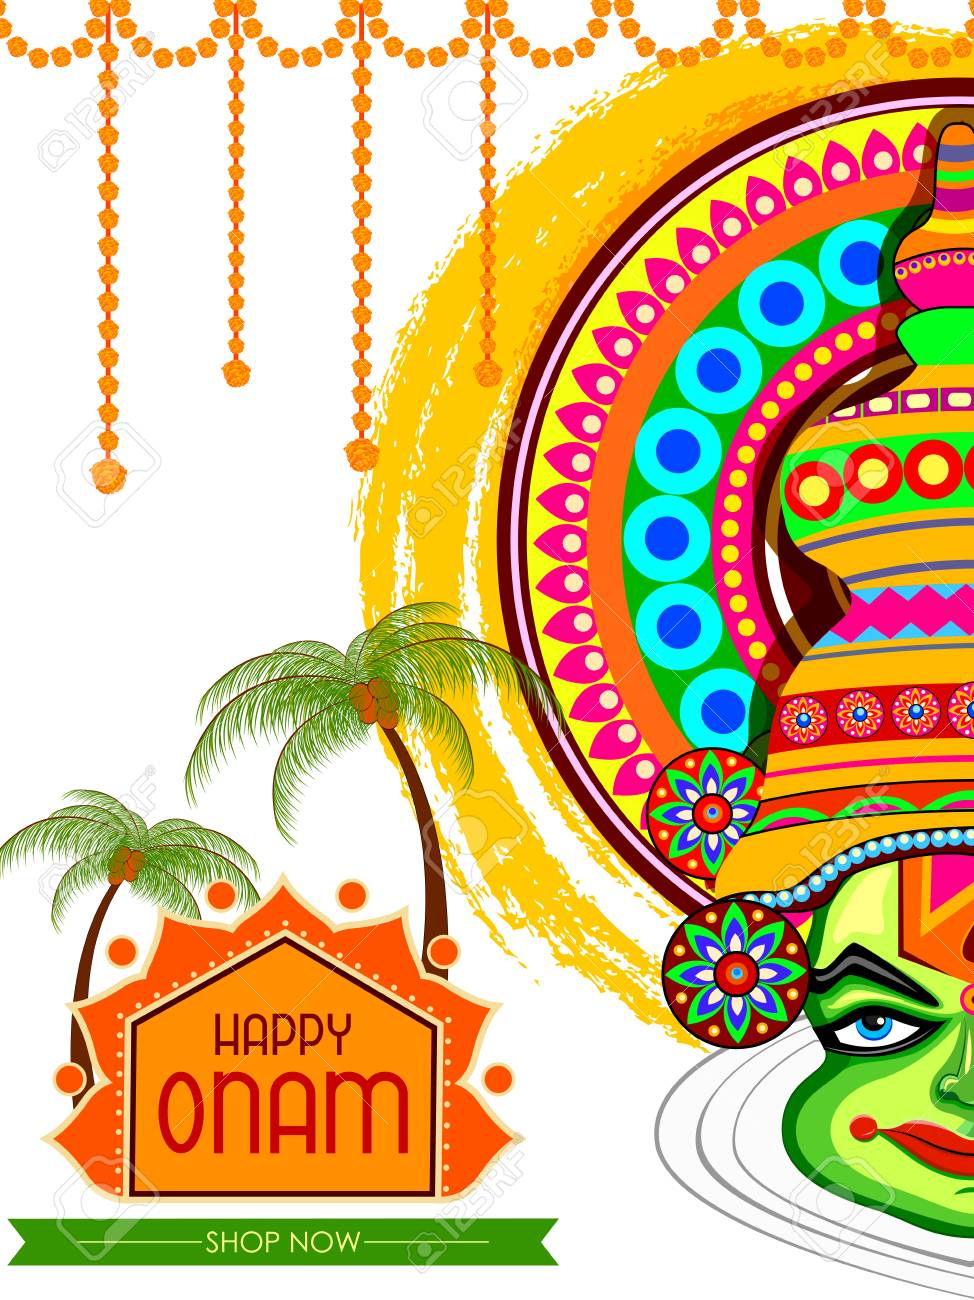 Happy Onam Big Shopping Sale Advertisement Background Stock Vector